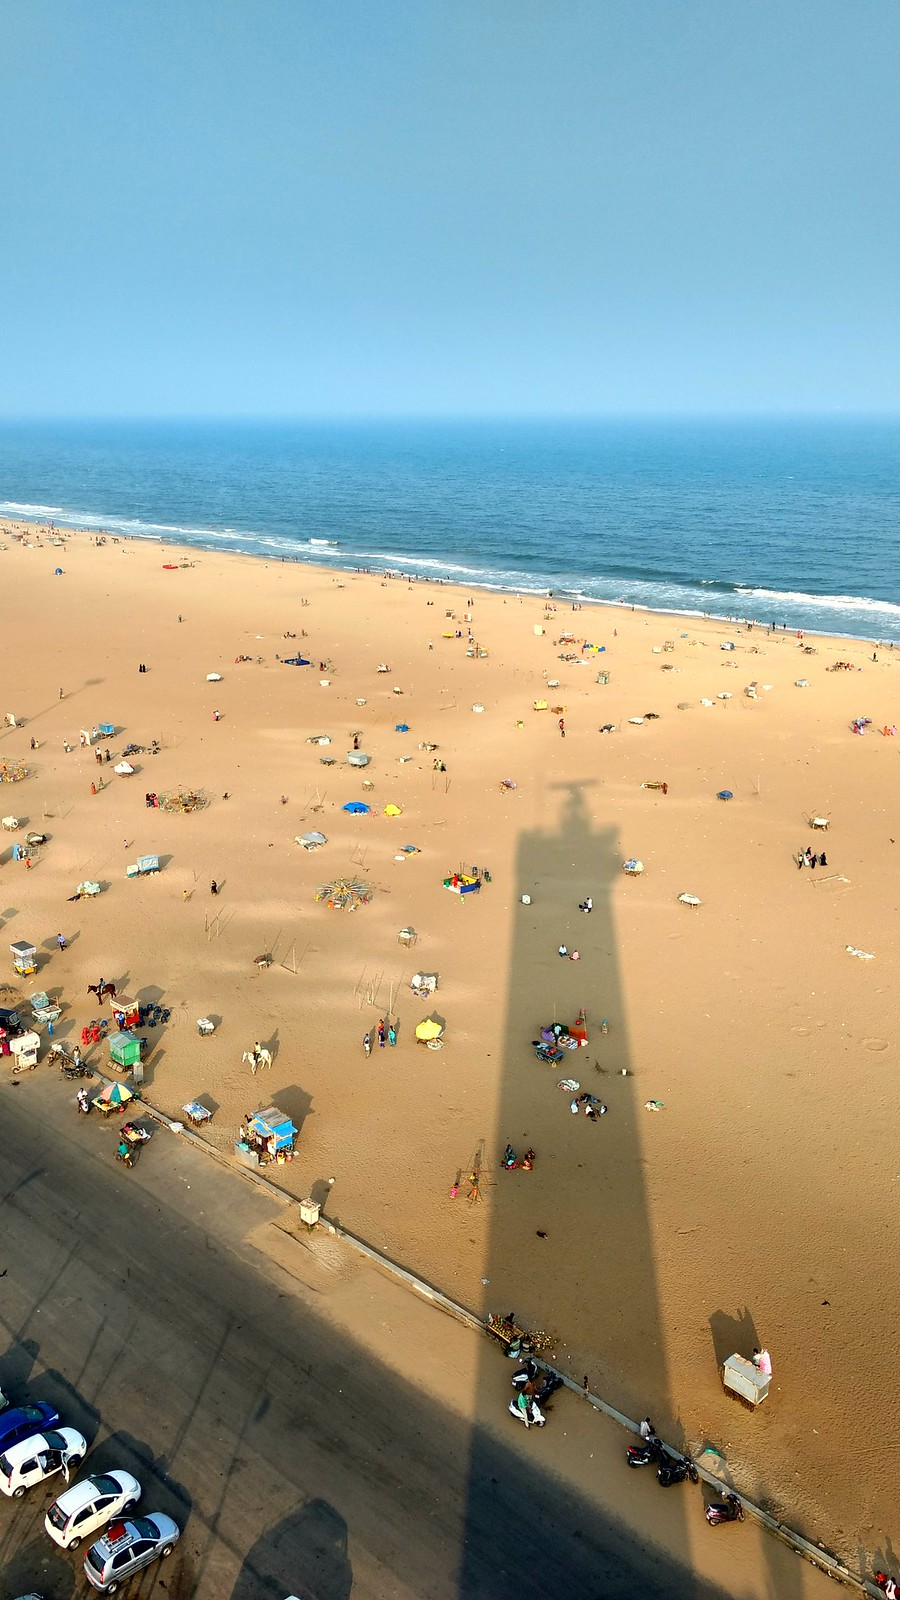 Marina Beach from the lighthouse